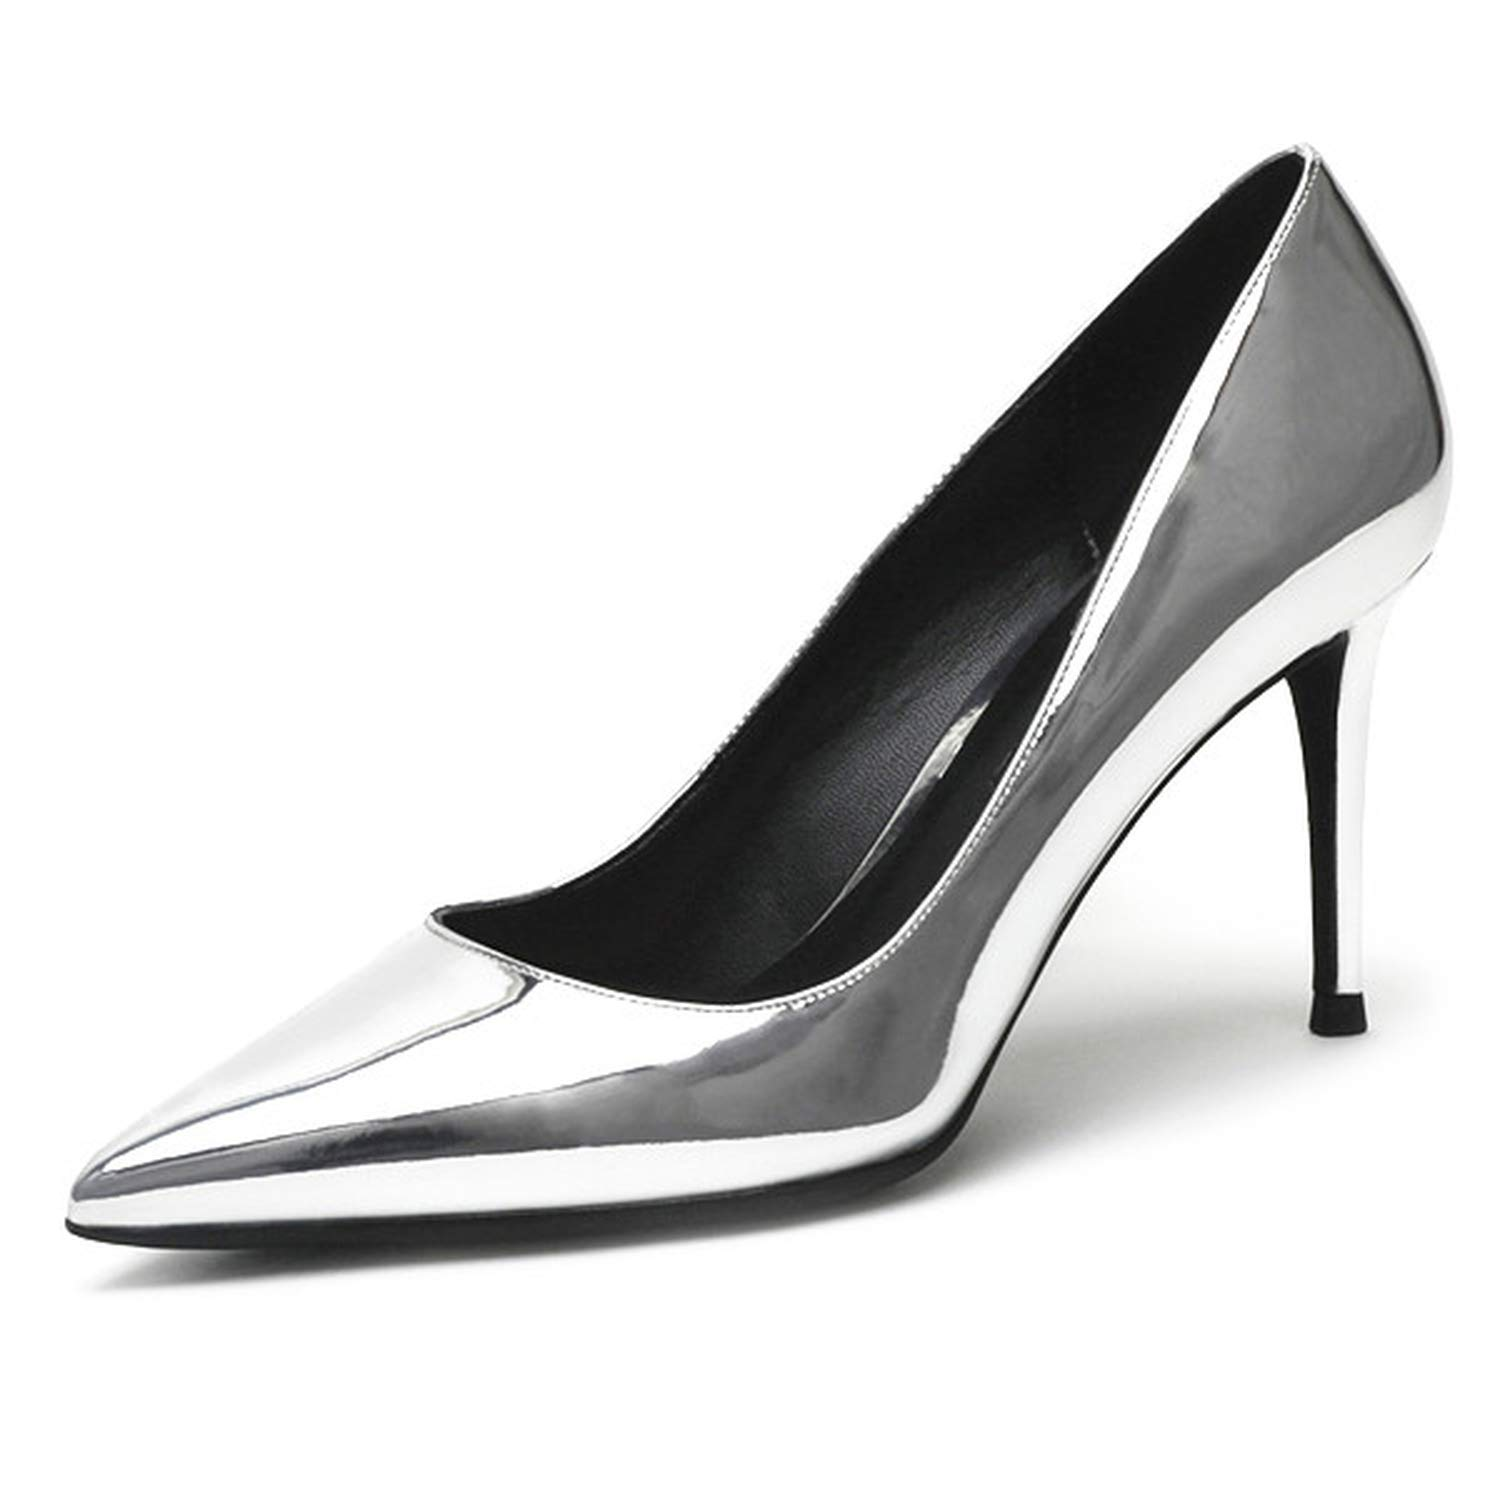 Silver Wedding shoes Women Pumps Patent Leather8Cm Thin Heel shoes for Women,K-318